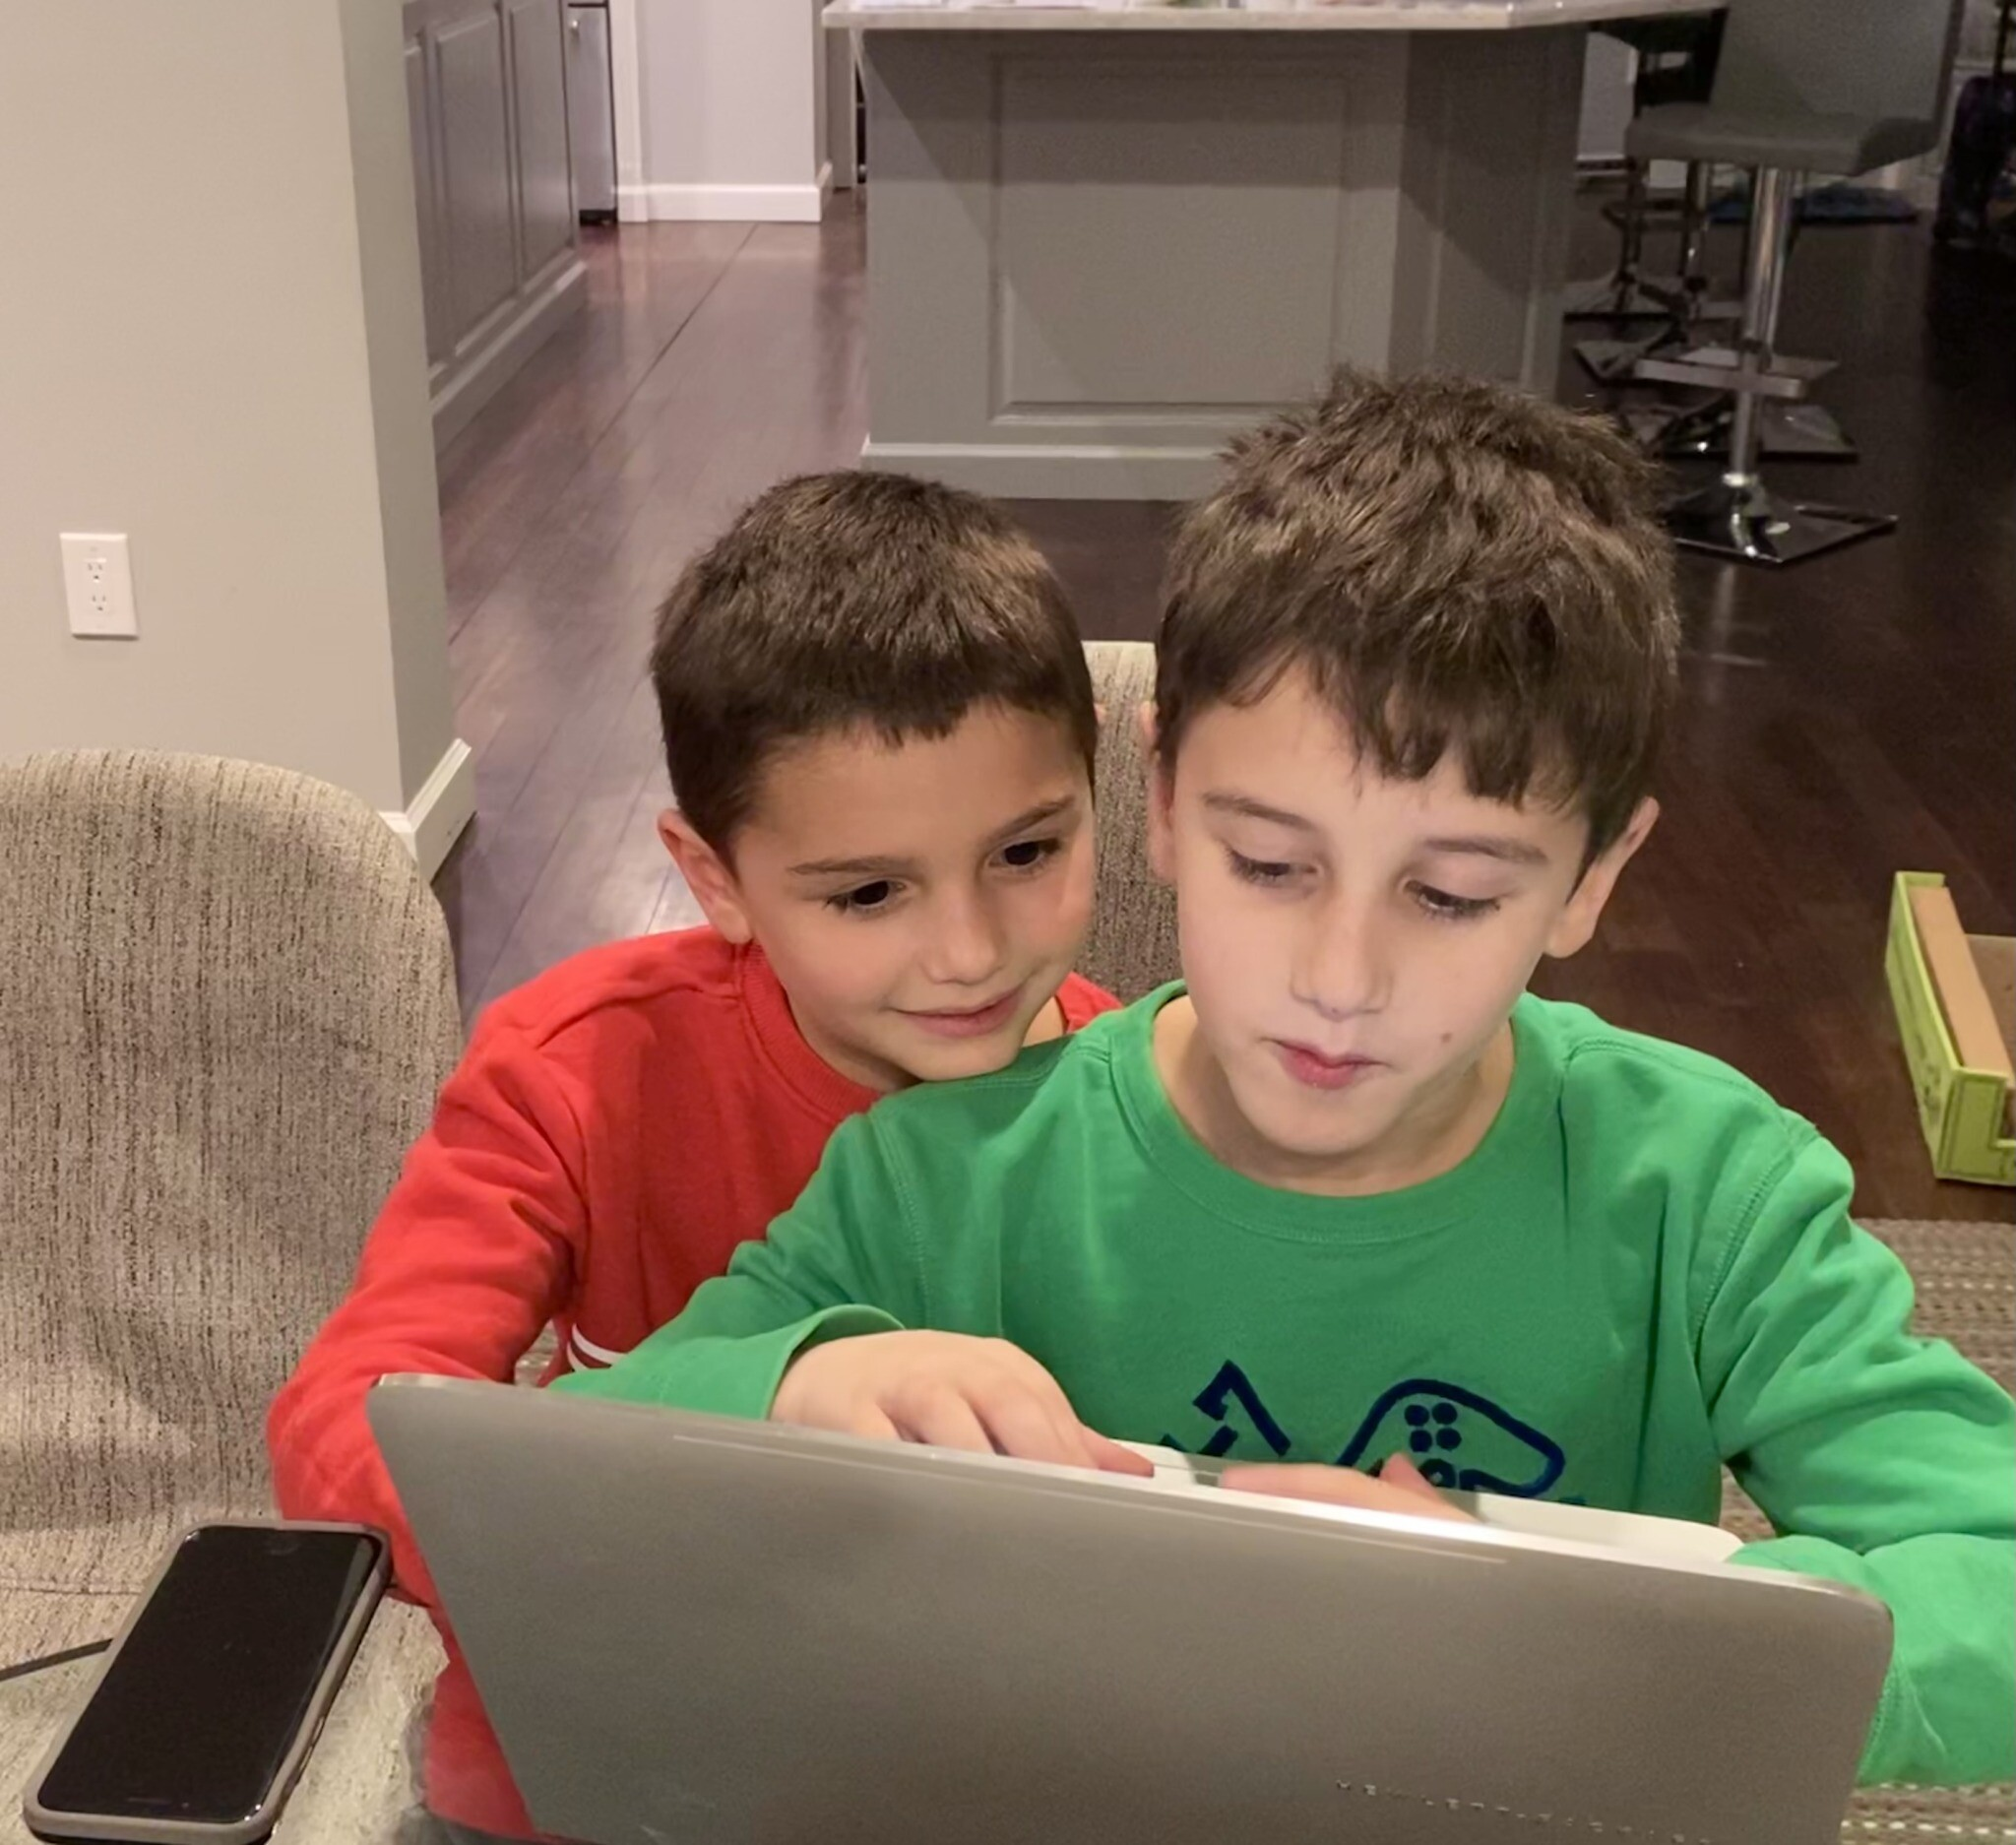 Wes, left, and Owen Weisberg participate in BSJC's online learning. Photo courtesy of Sara Braun